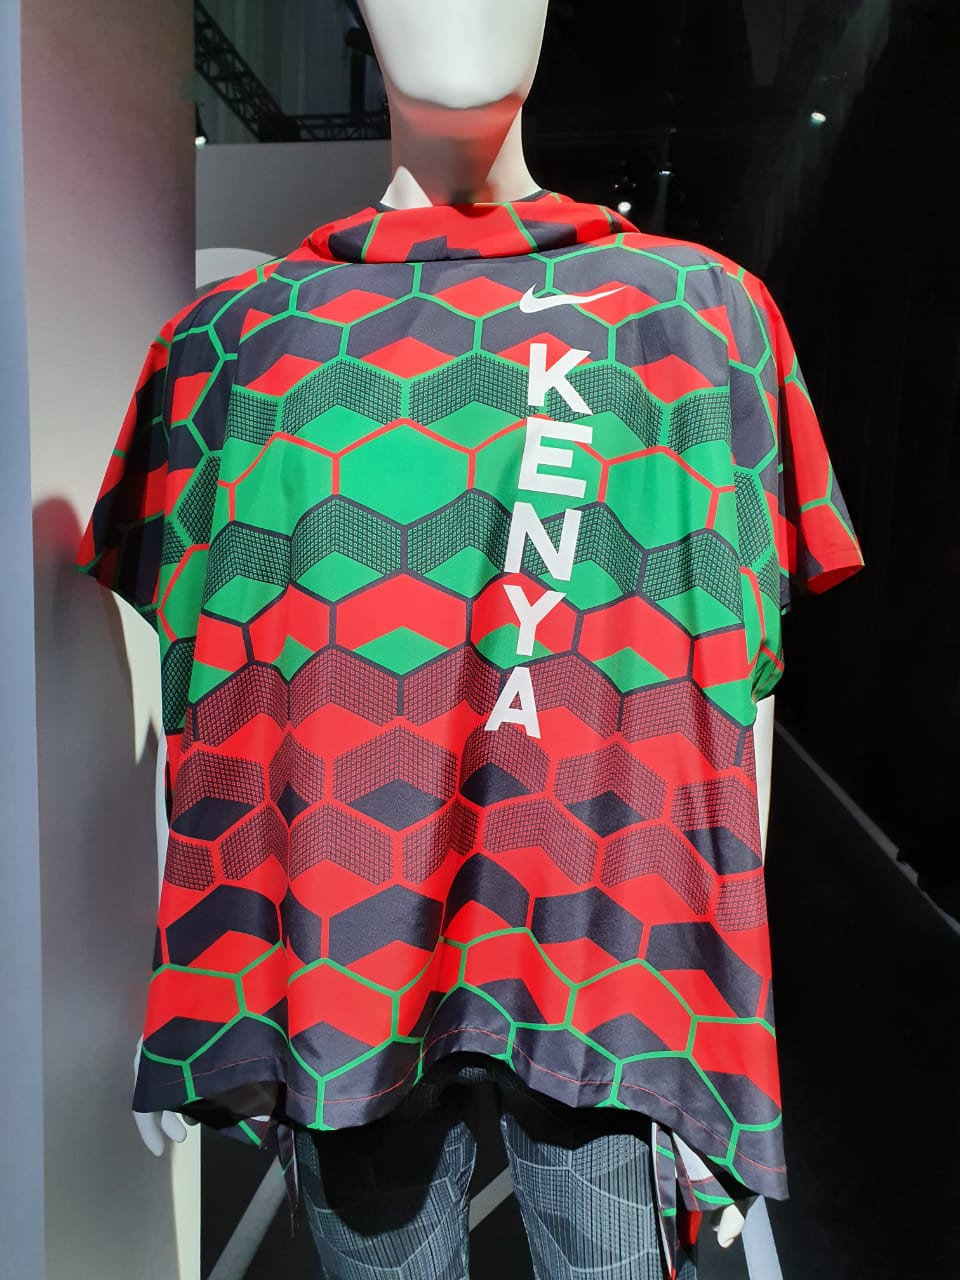 Part of Kenya's Olympic kit, pictured above, has received mixed reviews from the public ©Getty Images